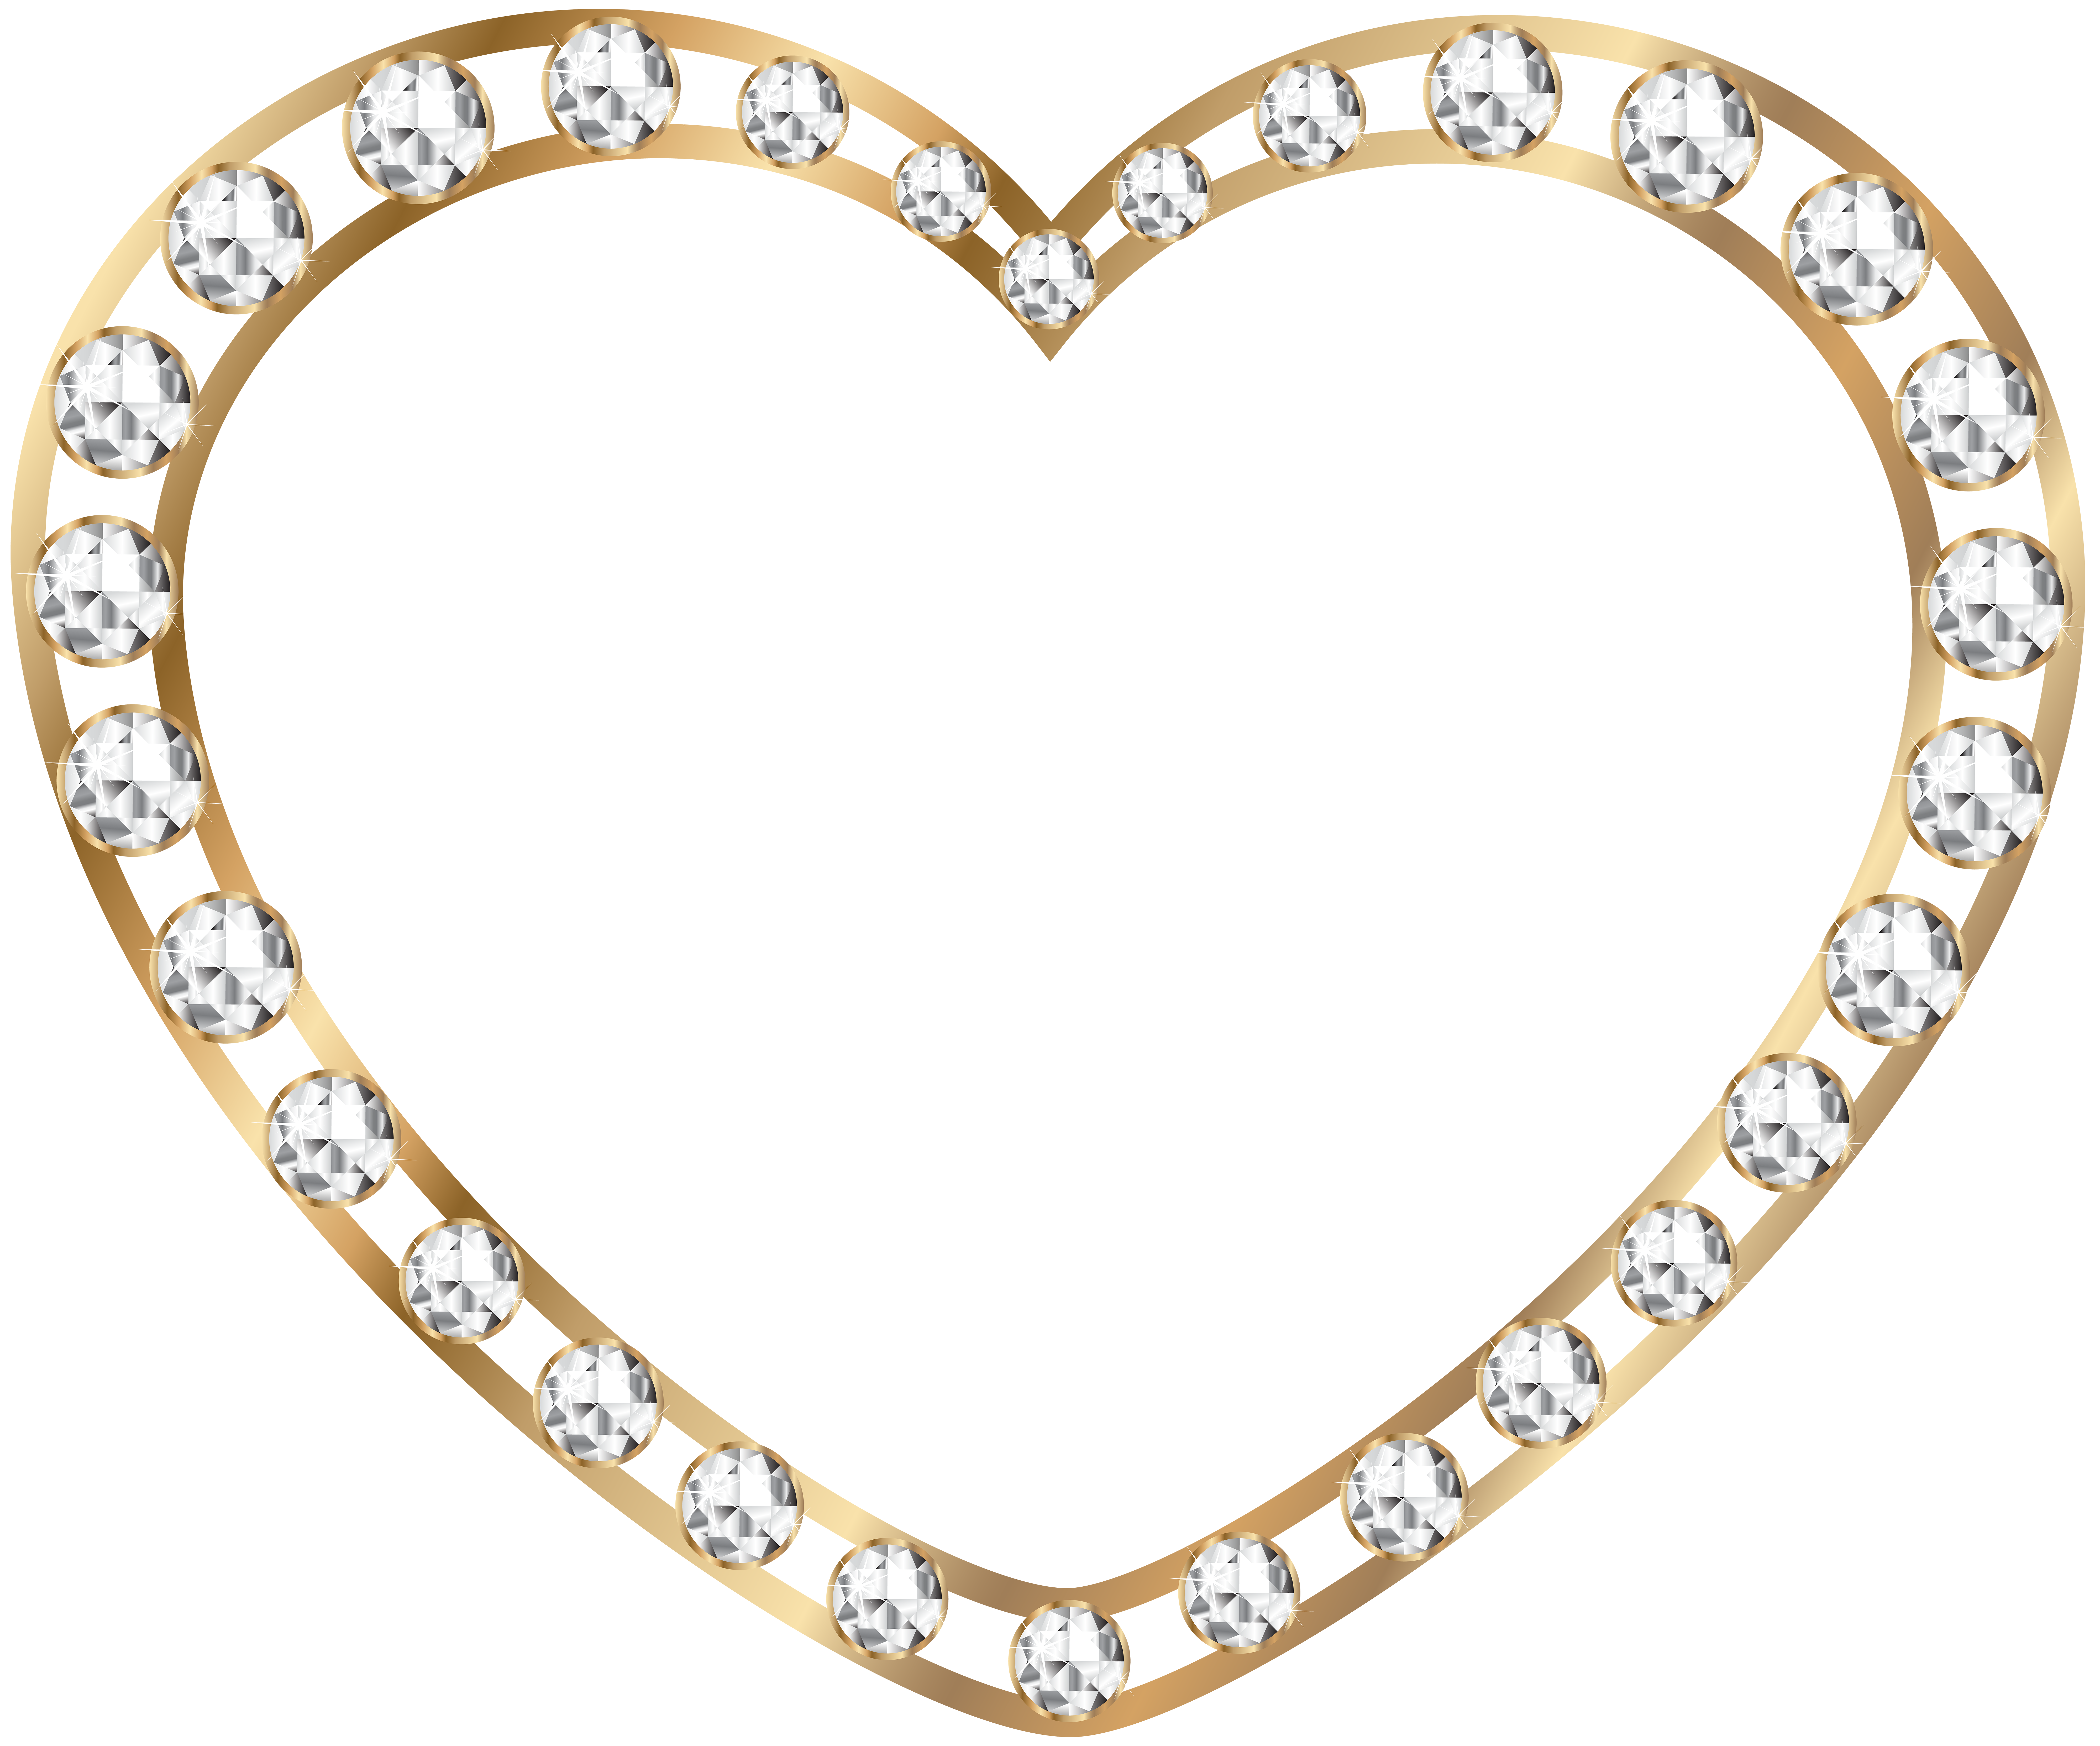 Rose gold heart clipart freeuse Gold Heart with Diamonds Transparent PNG Image | Gallery ... freeuse